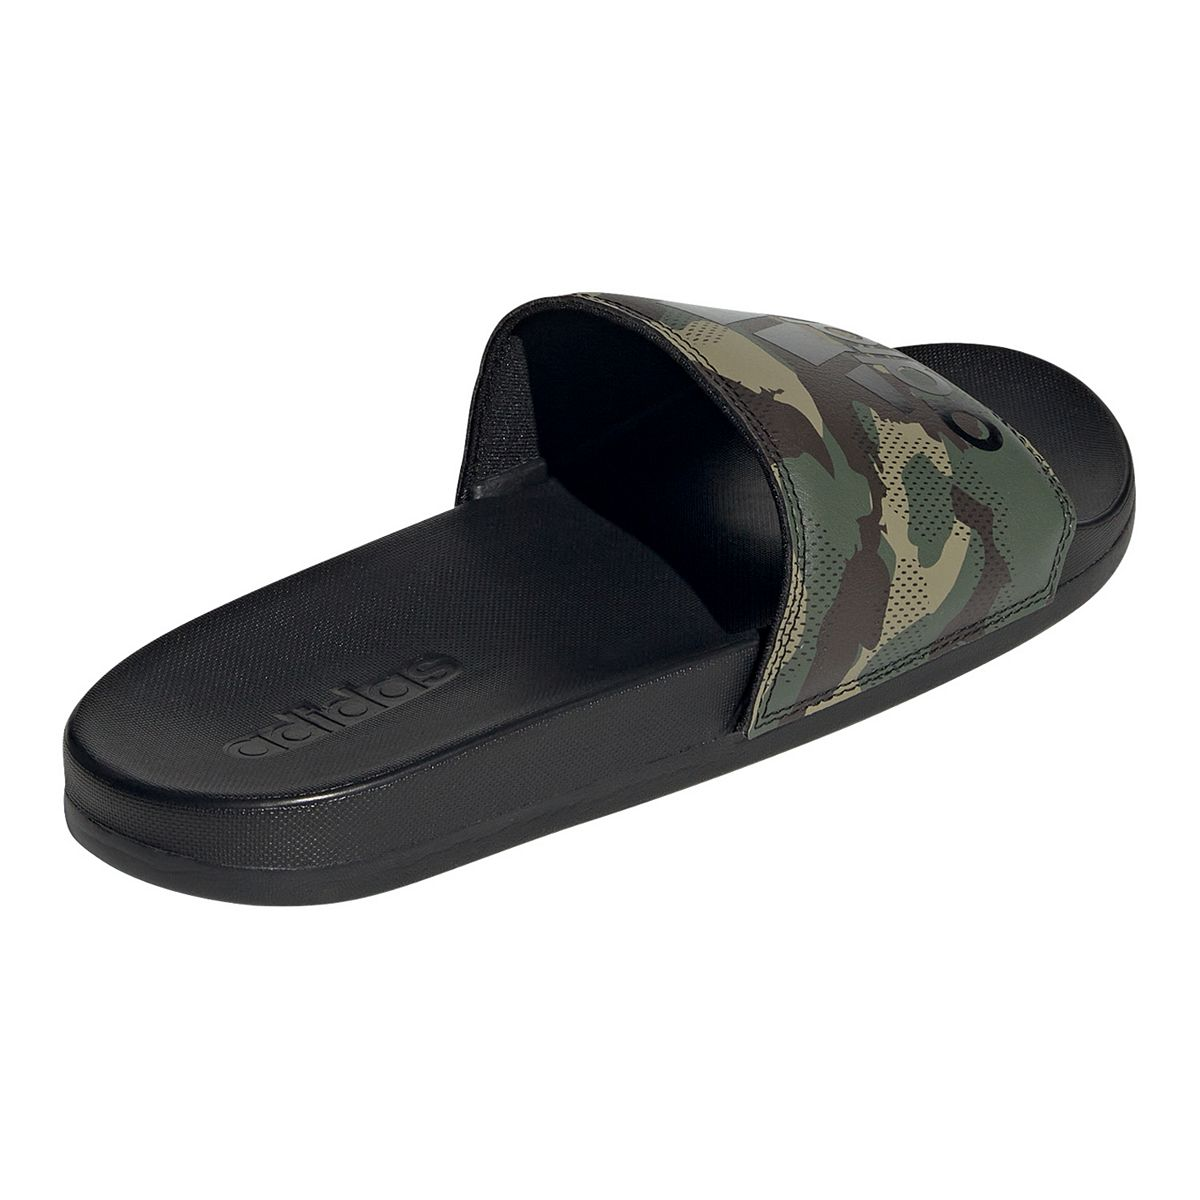 adidas Adilette Cloudfoam Plus Men's Slide Sandals Red White Black 6fWuX